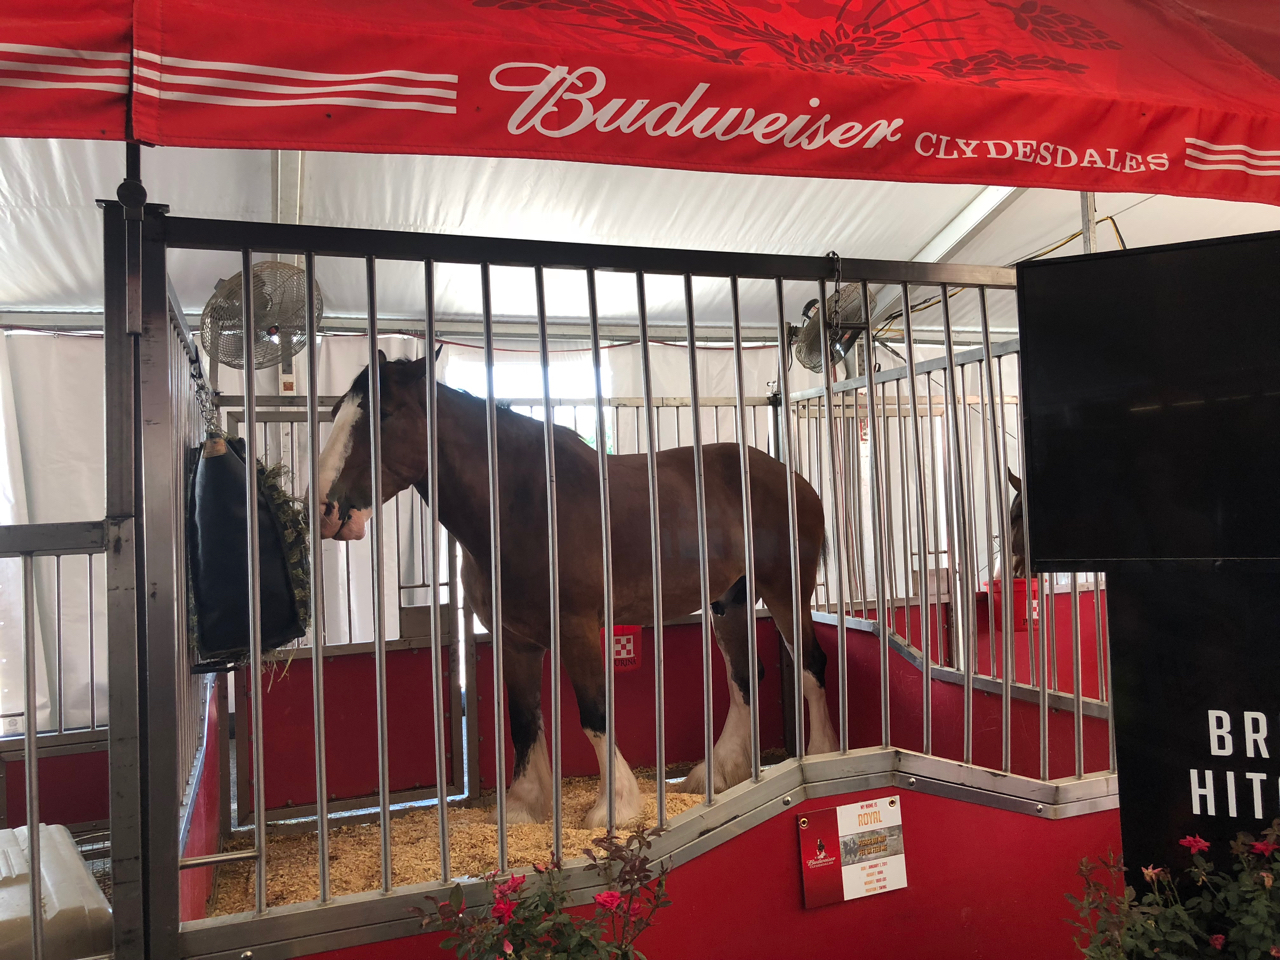 Budweiser Clydesdales at Ohio State Fair